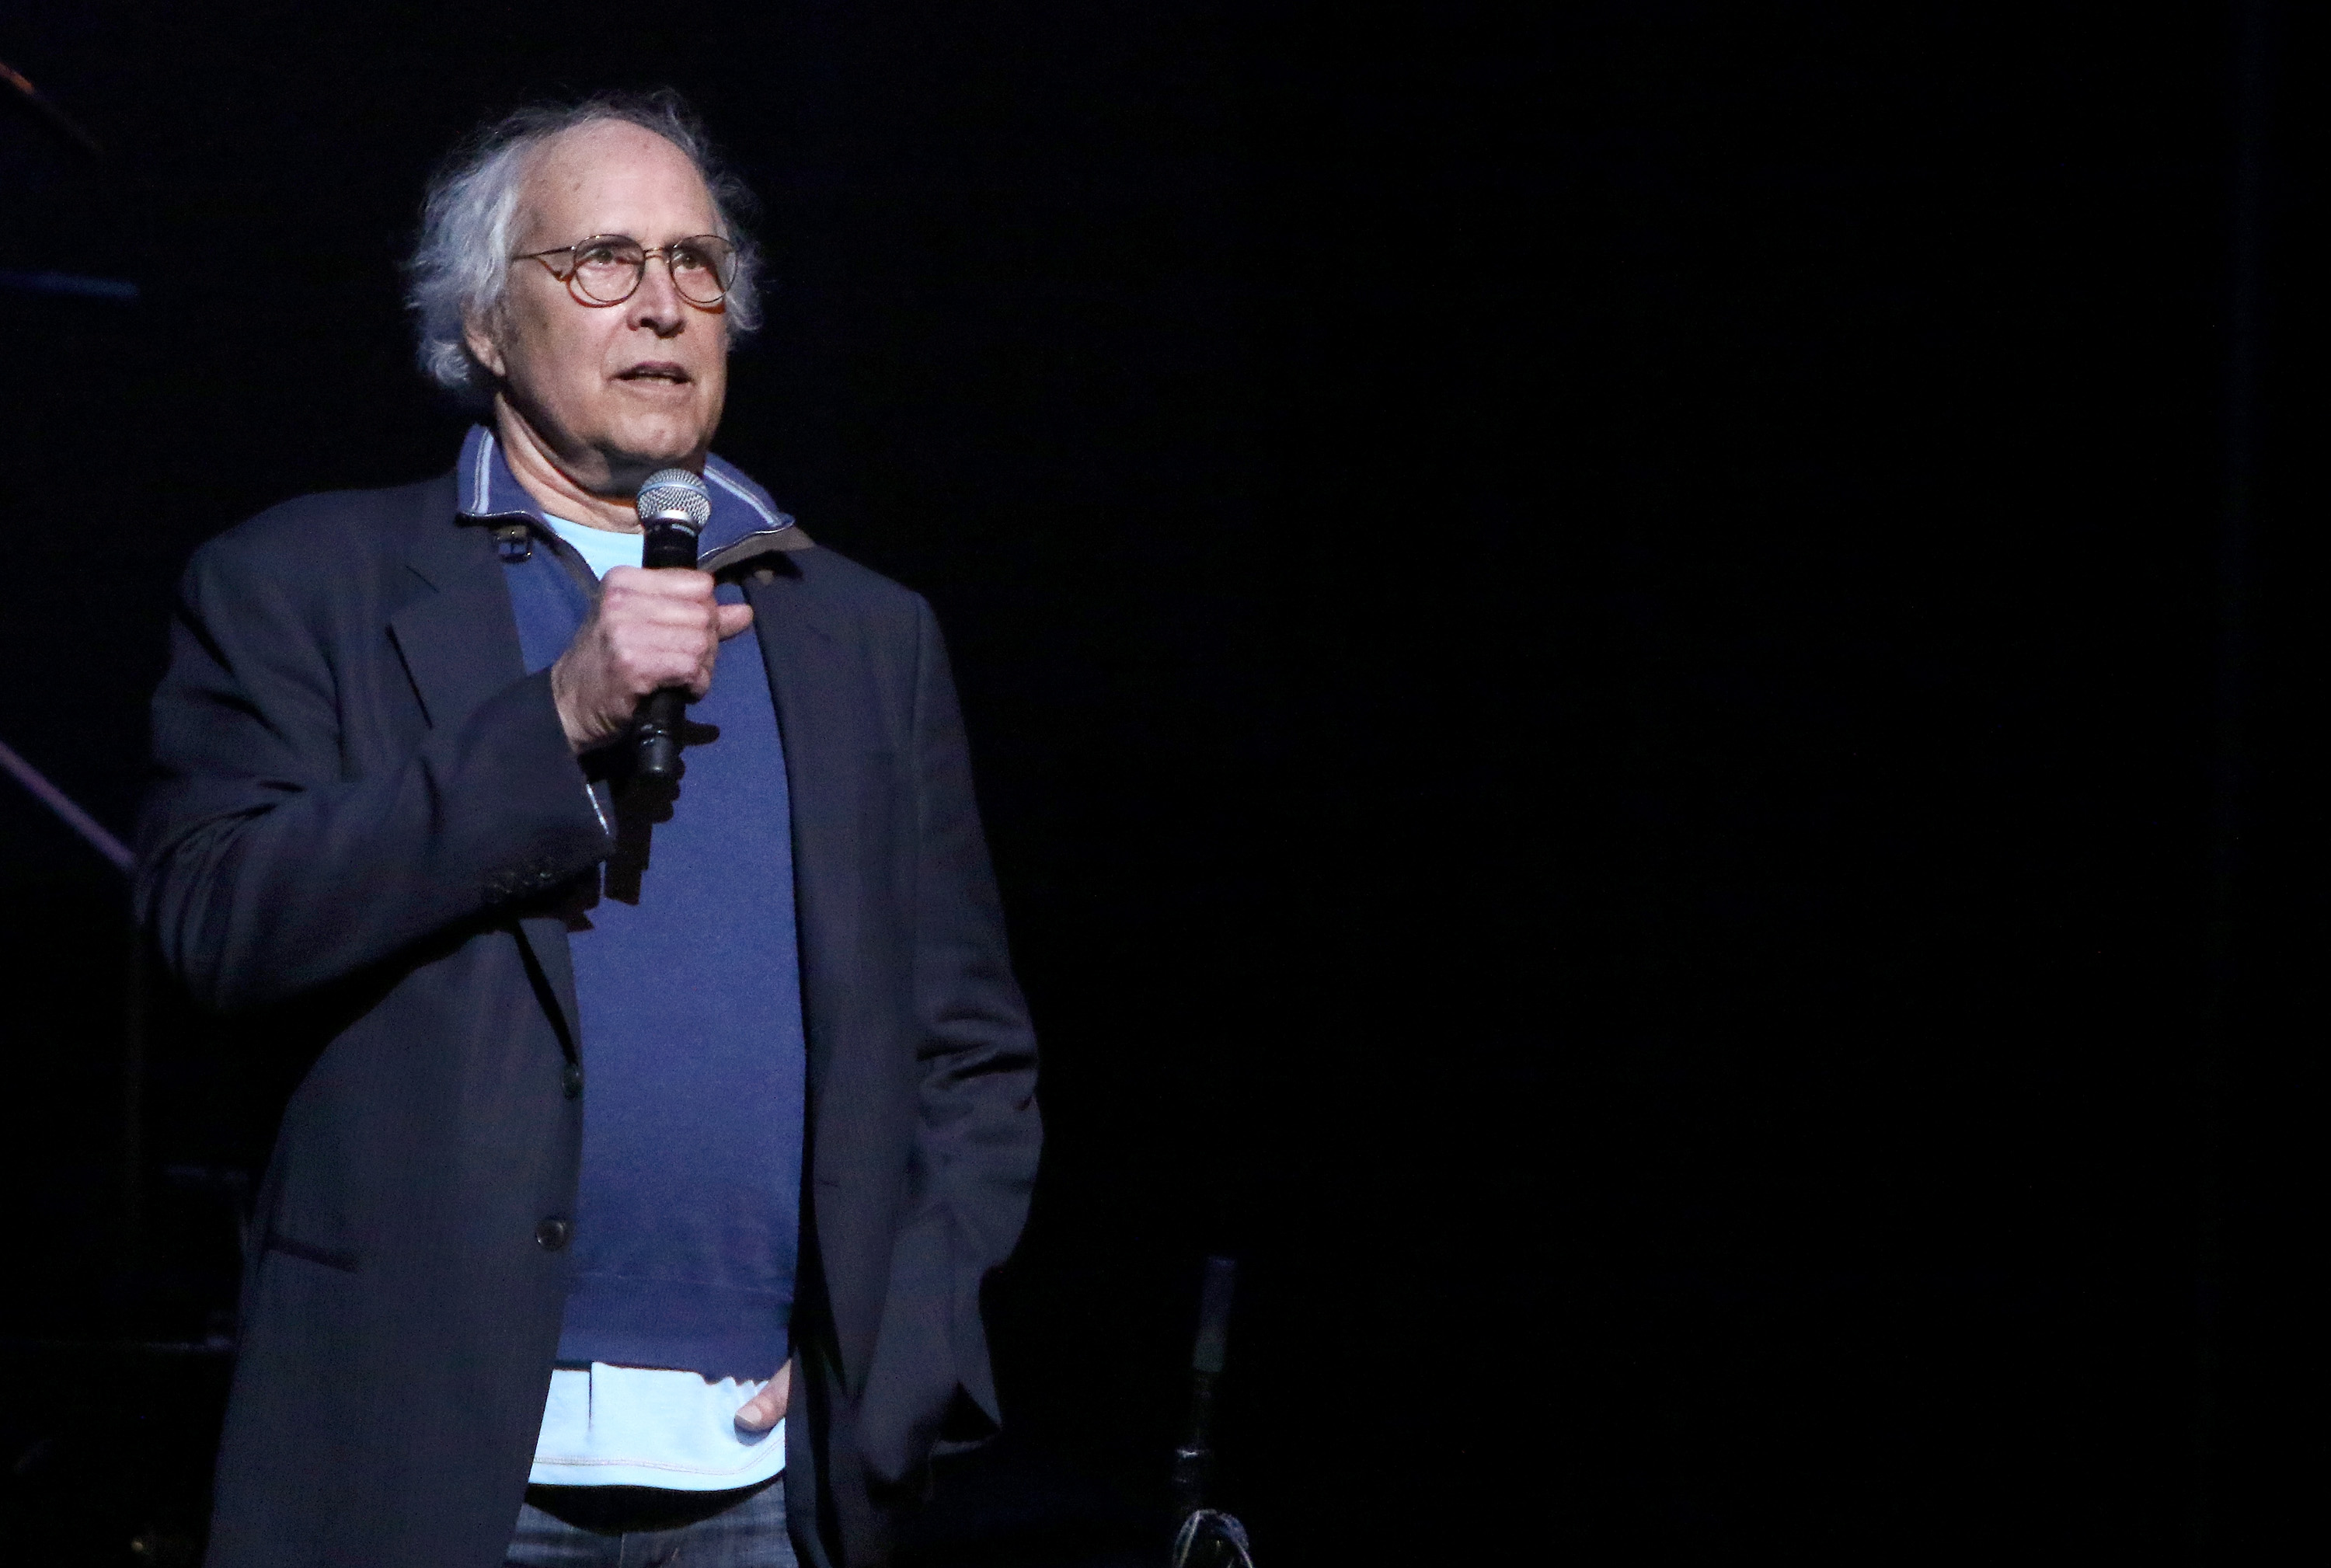 Chevy Chase facts